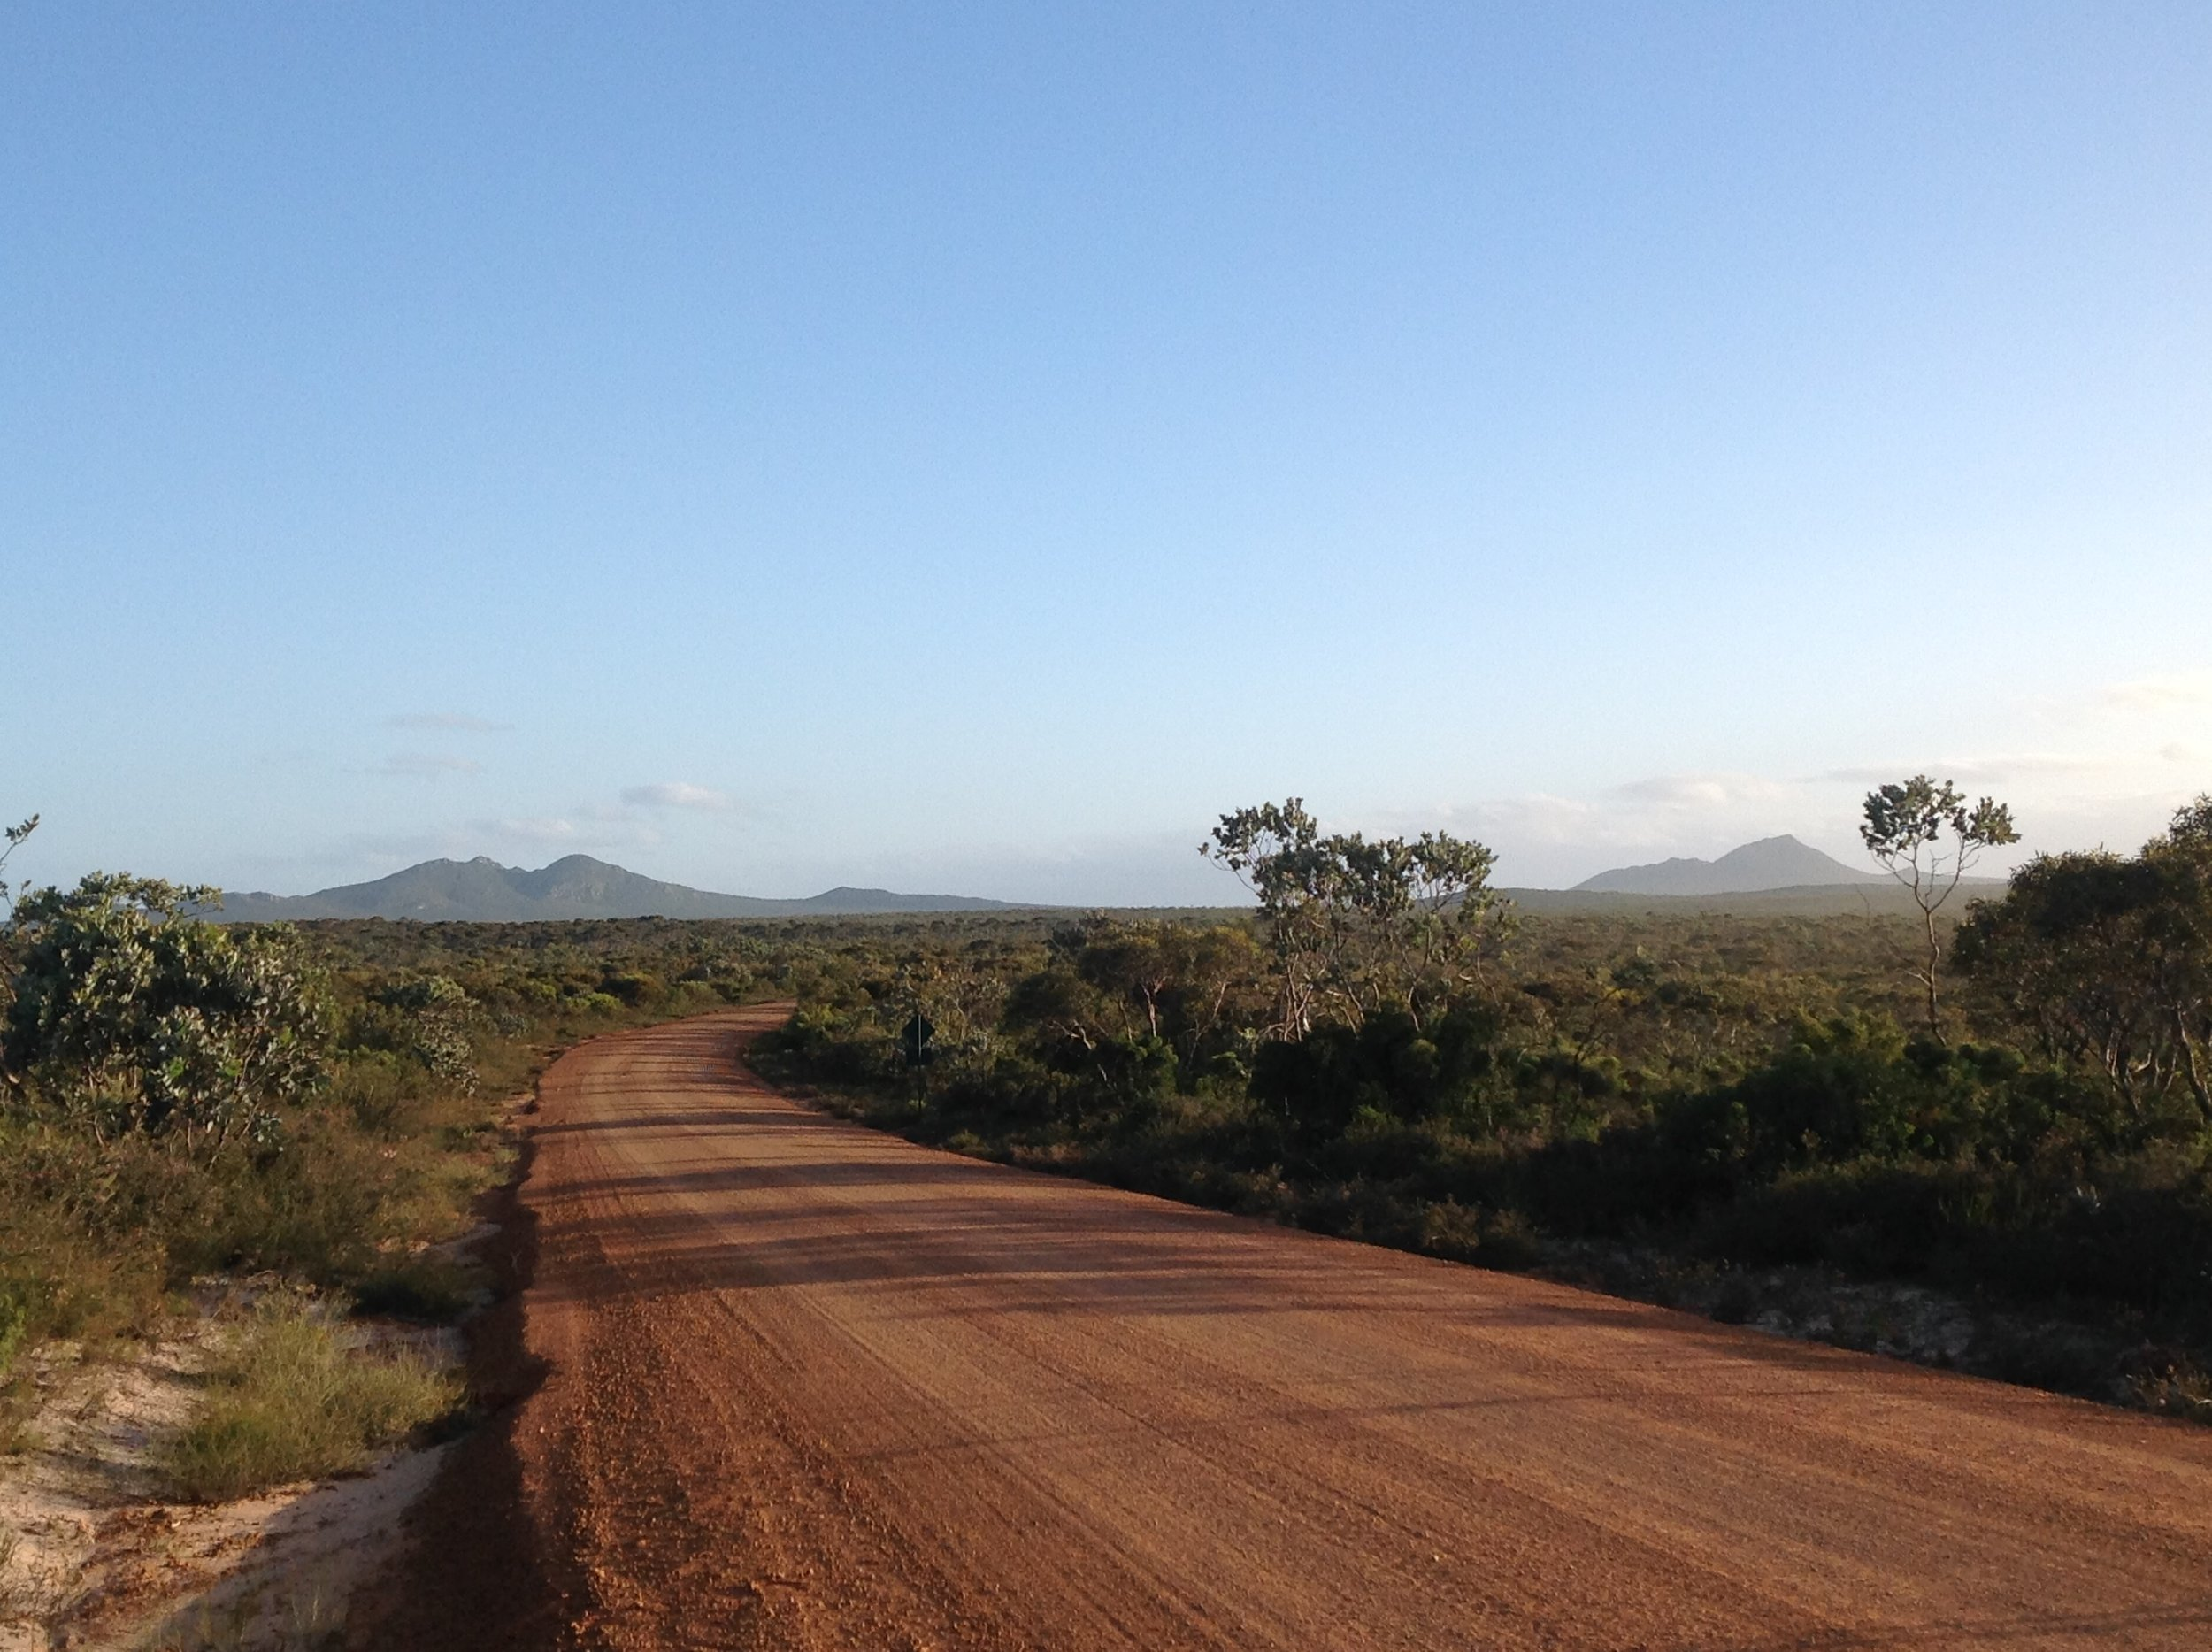 West Mt Barren in the distance...dirt road leading to Point Anne on the west side of the National Park